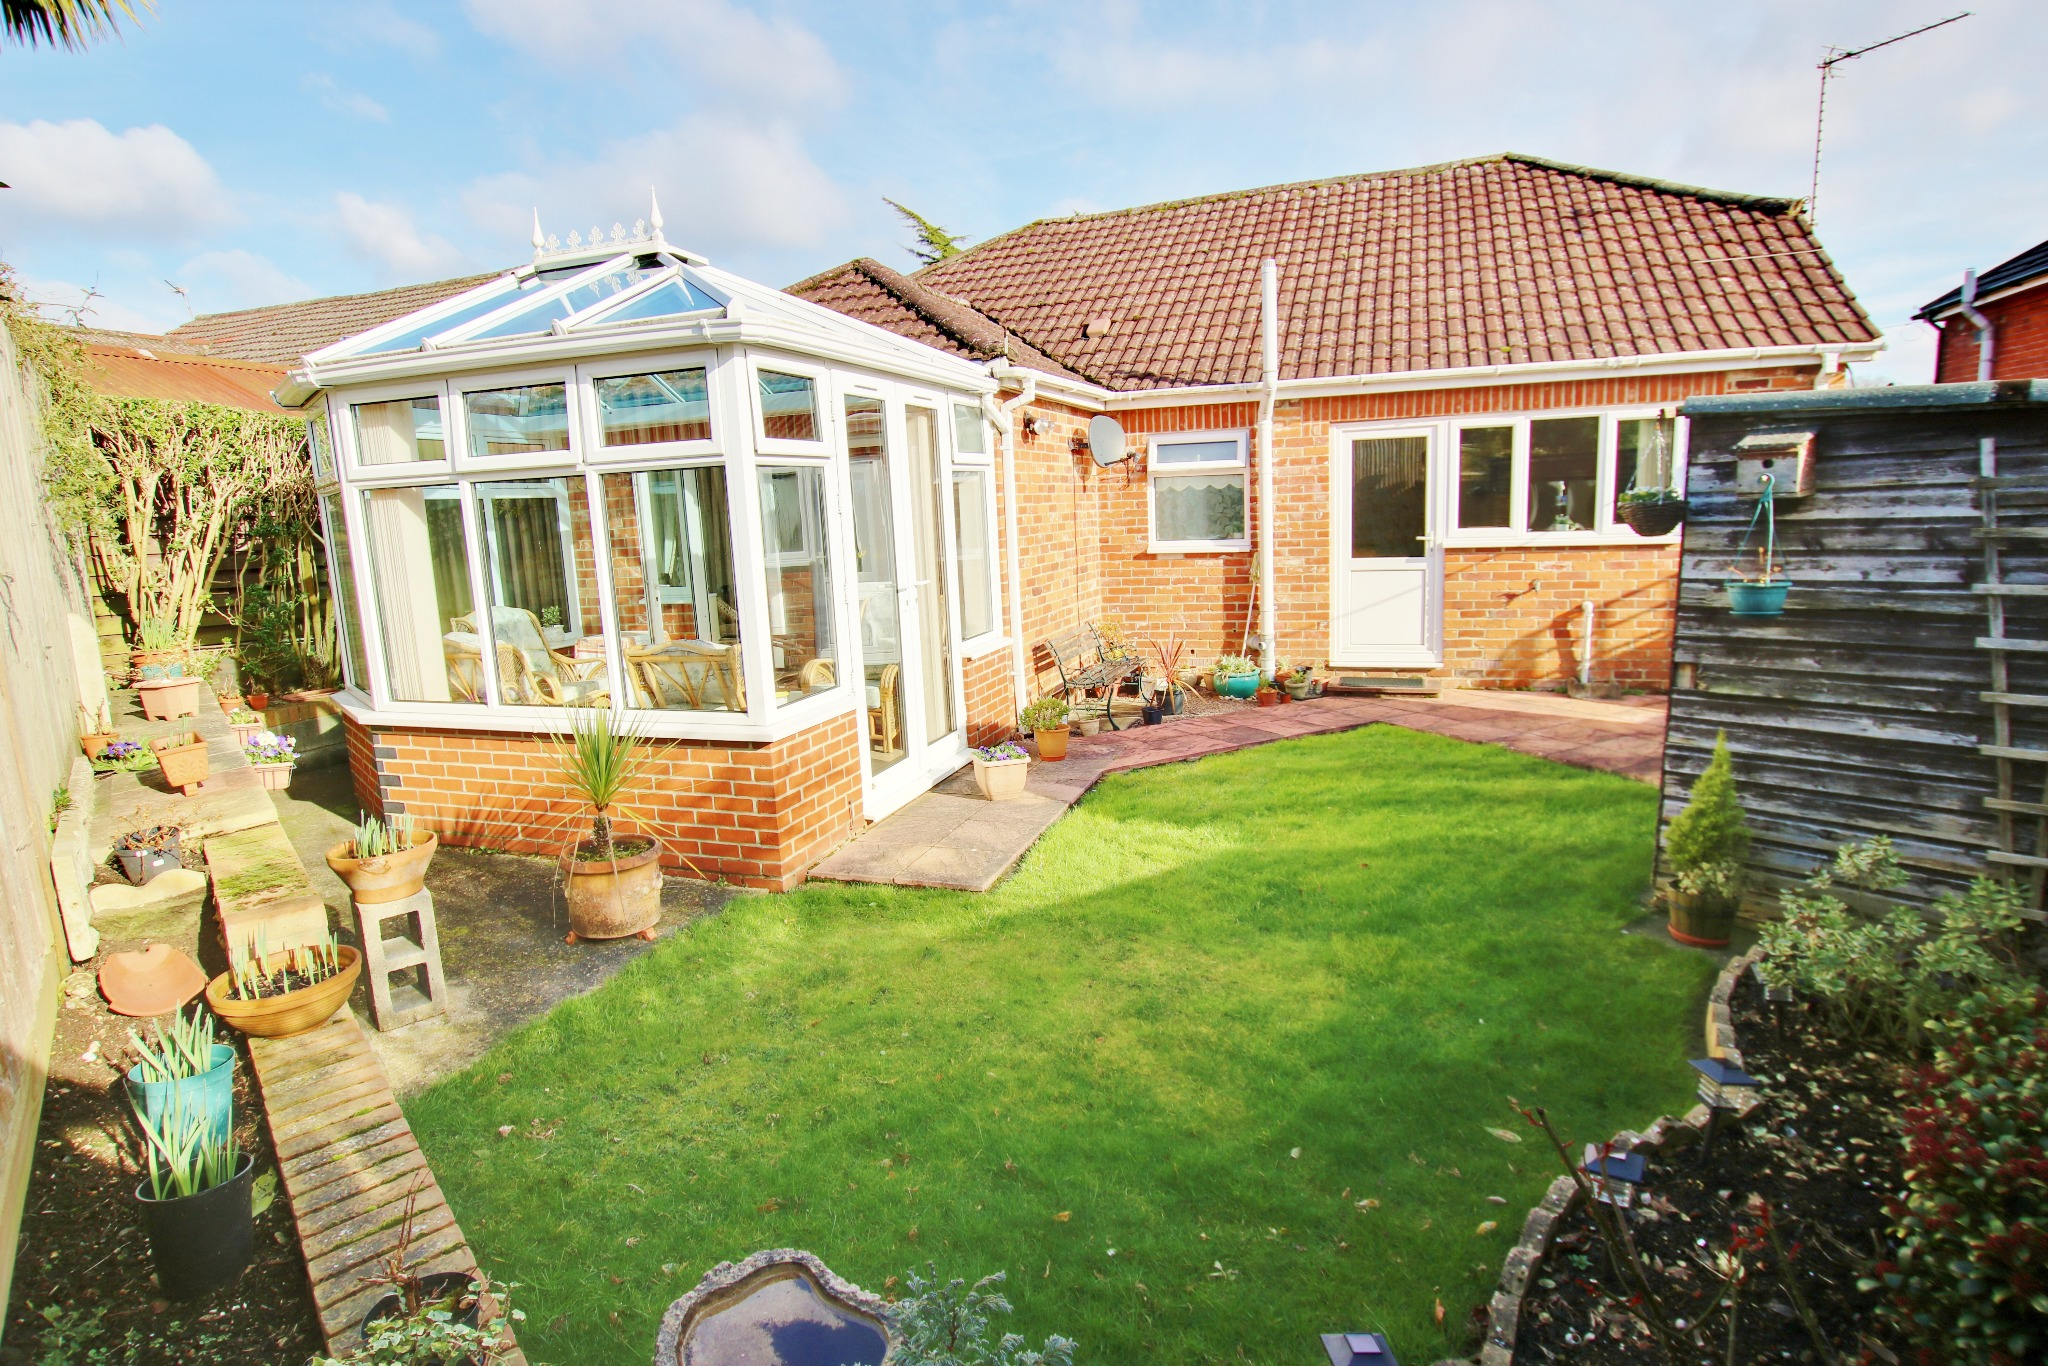 VIEWS OVER ALLOTMENTS! TWO DOUBLE BEDROOMS! A MUST SEE!